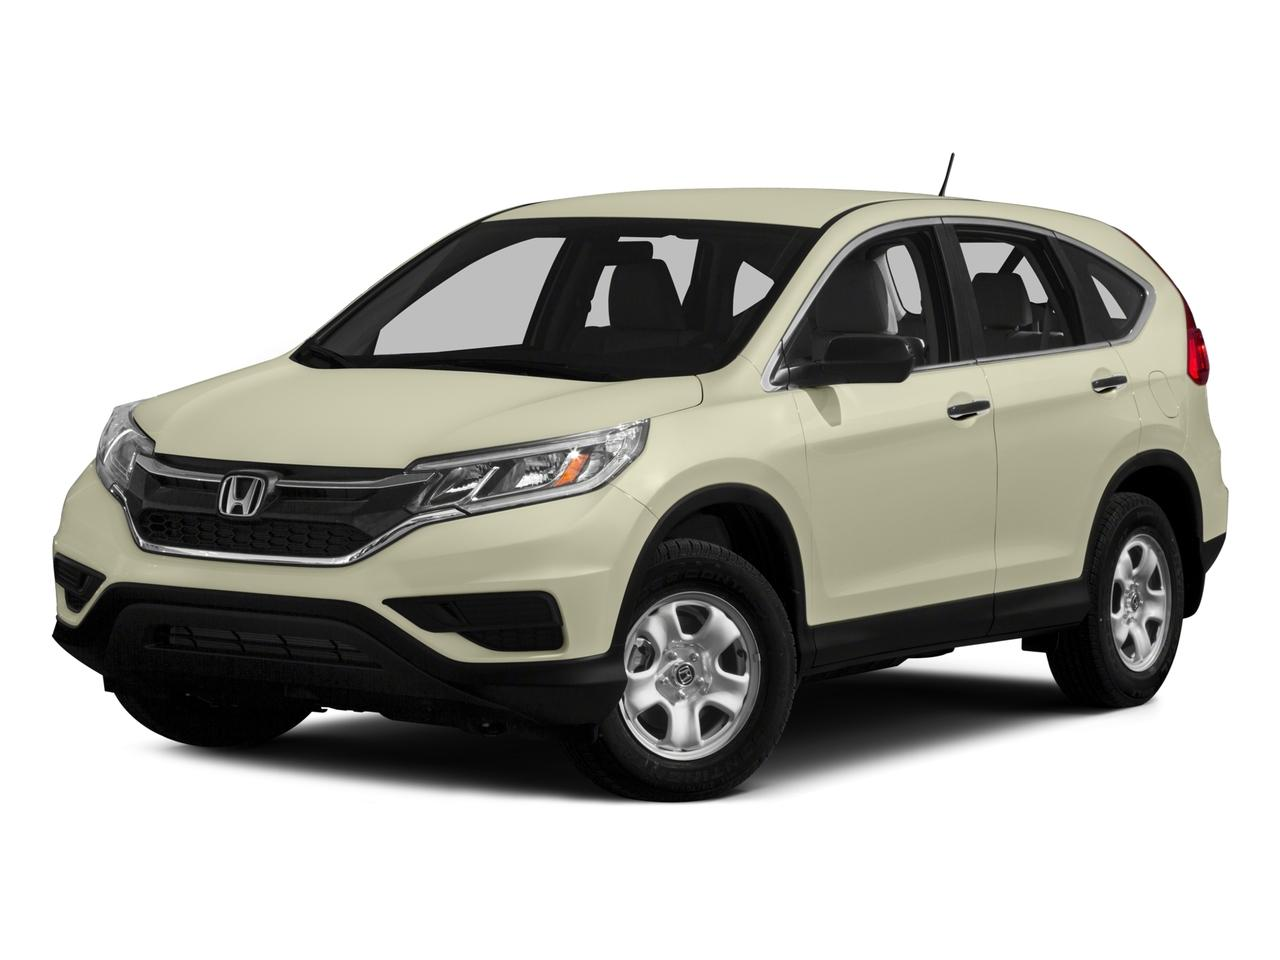 2015 Honda CR-V Vehicle Photo in Oklahoma City, OK 73131